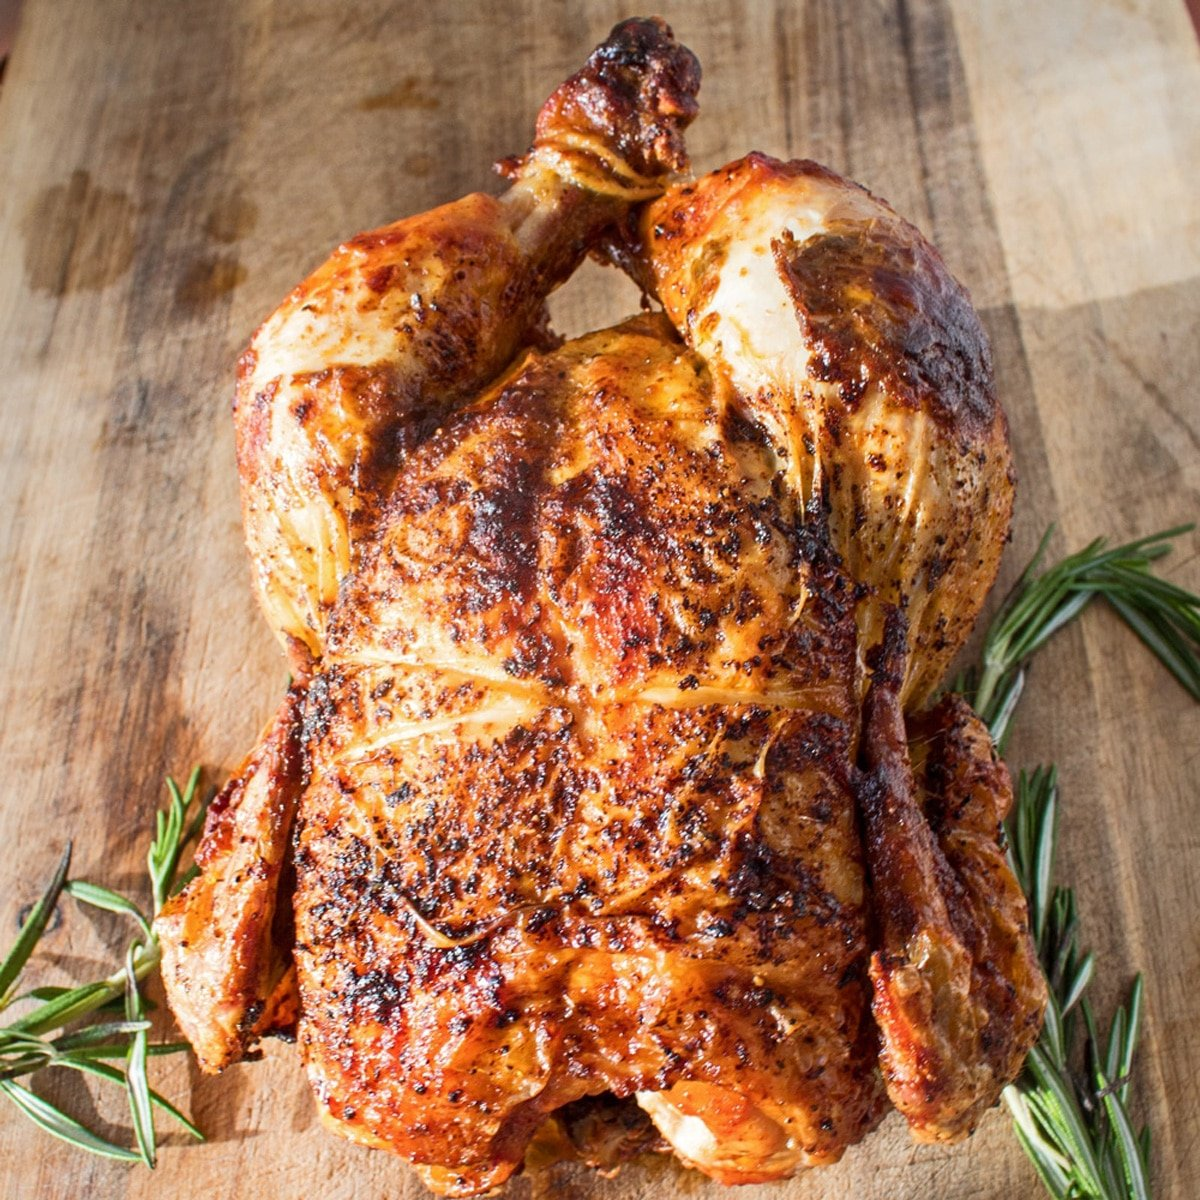 Rotisserie chicken on a cutting board with fresh rosemary.